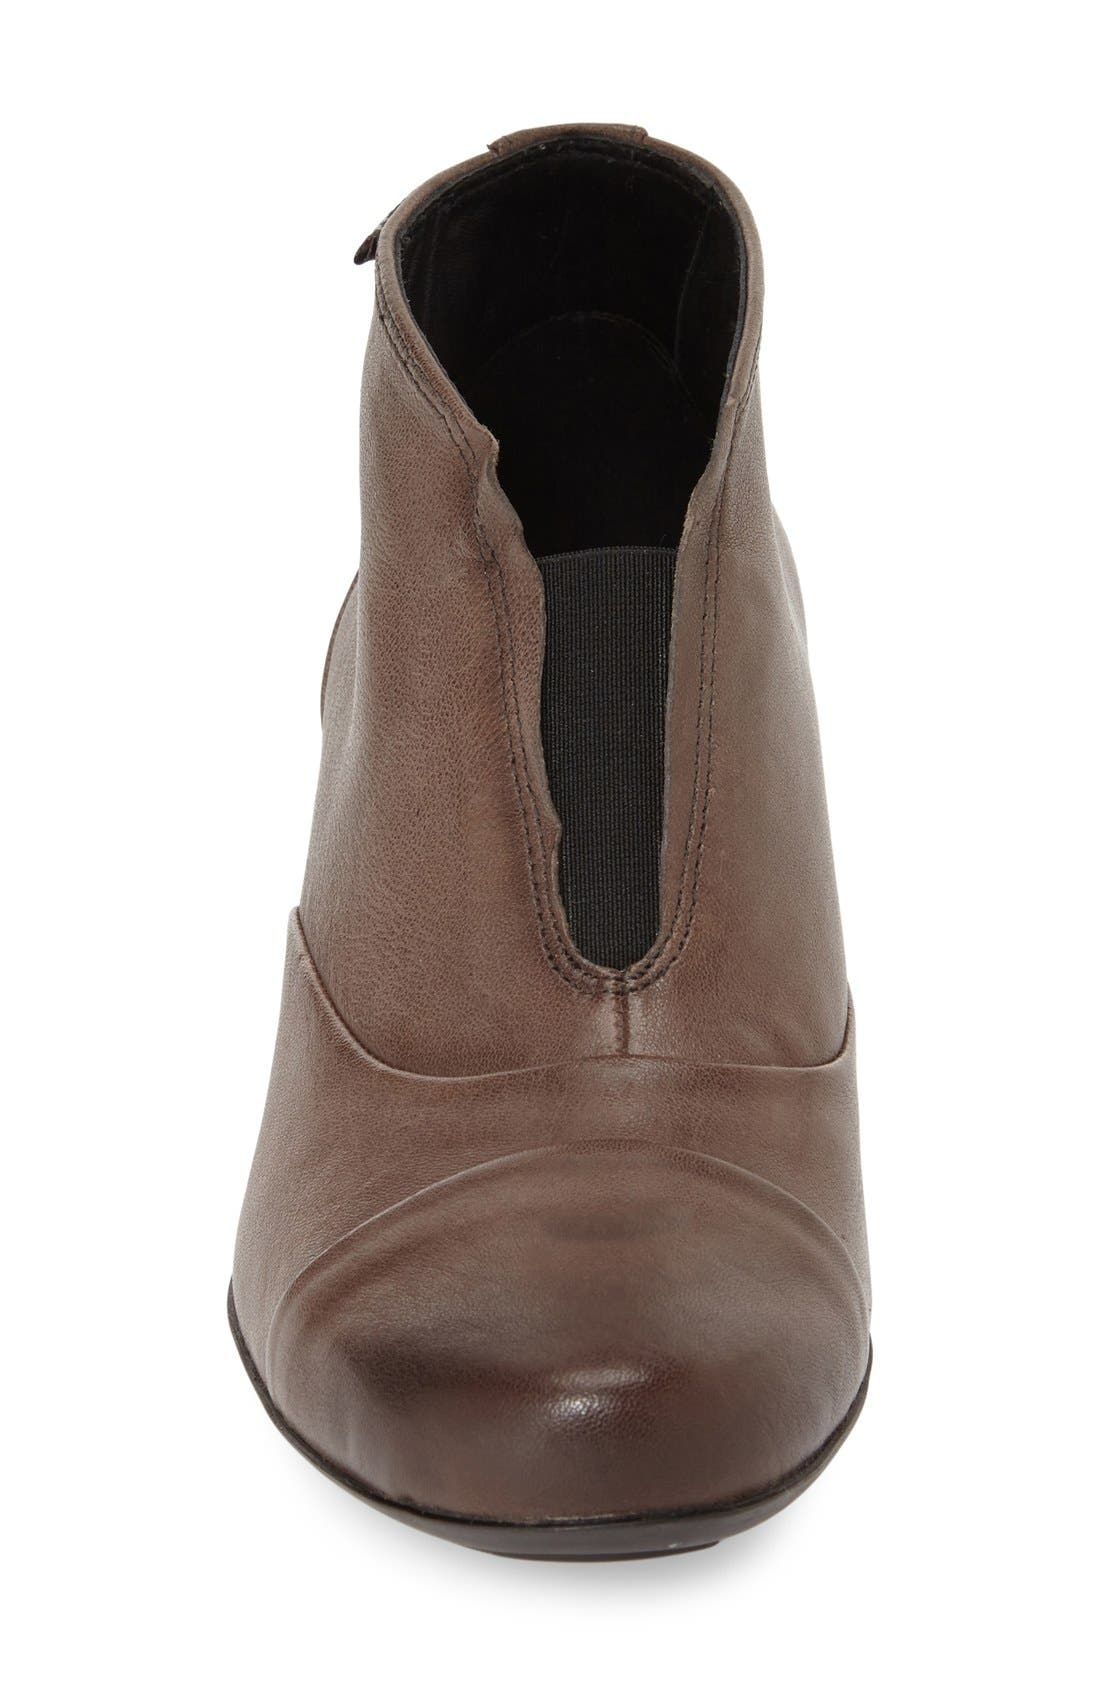 'Maddie' Bootie,                             Alternate thumbnail 3, color,                             Dark Taupe Nappa